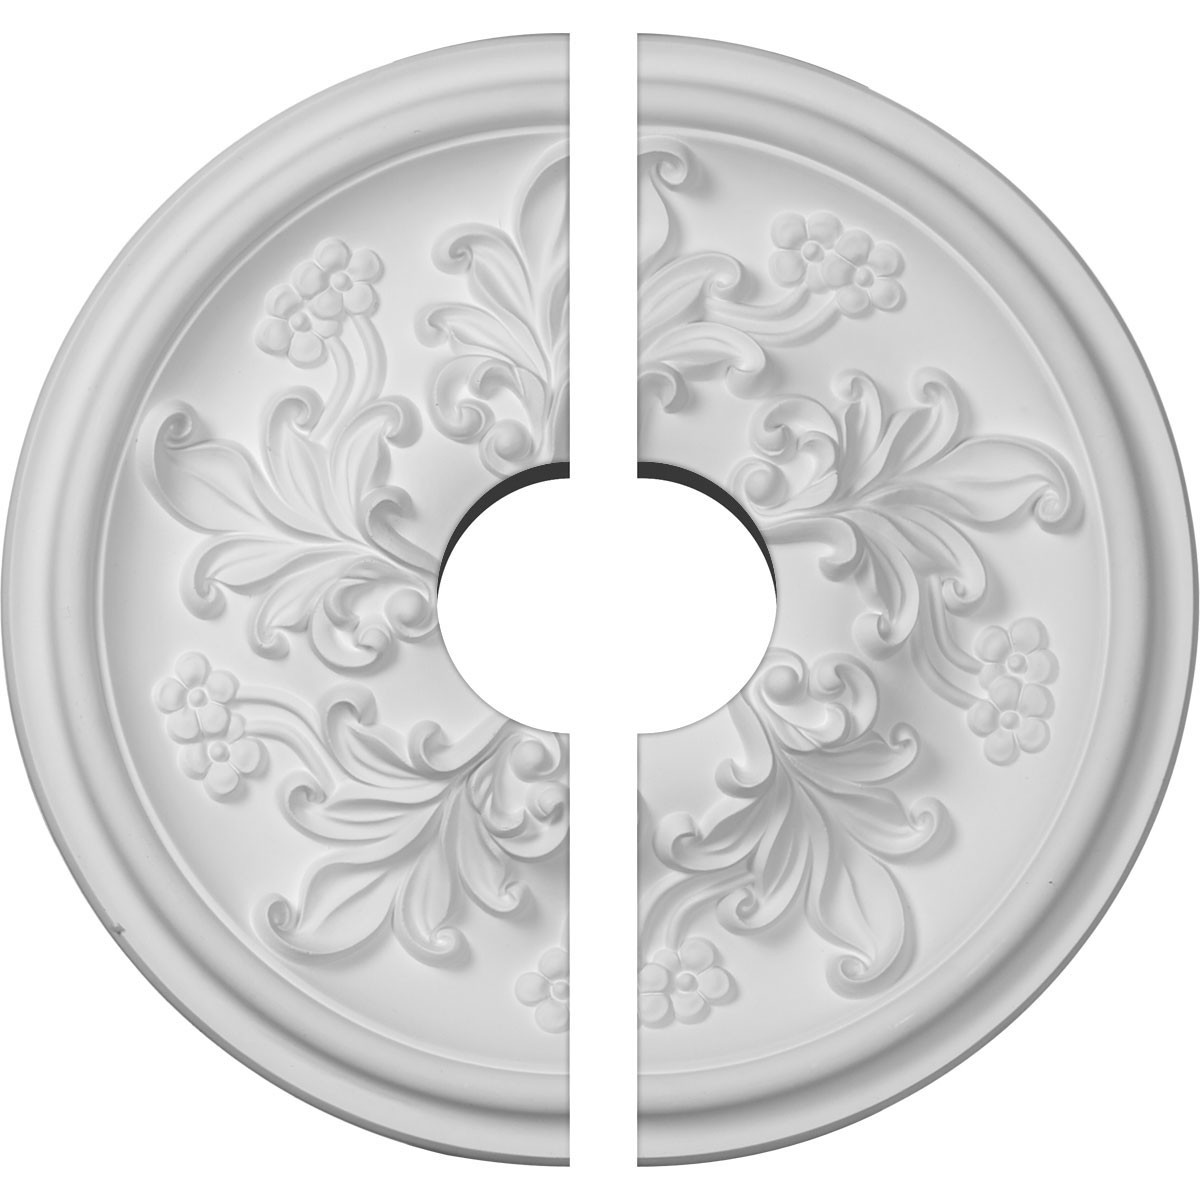 """EM-CM14KT2-03500 - 14 1/2""""OD x 3 1/2""""ID x 2 3/4""""P Katheryn Ceiling Medallion, Two Piece (Fits Canopies up to 3 1/2"""")"""